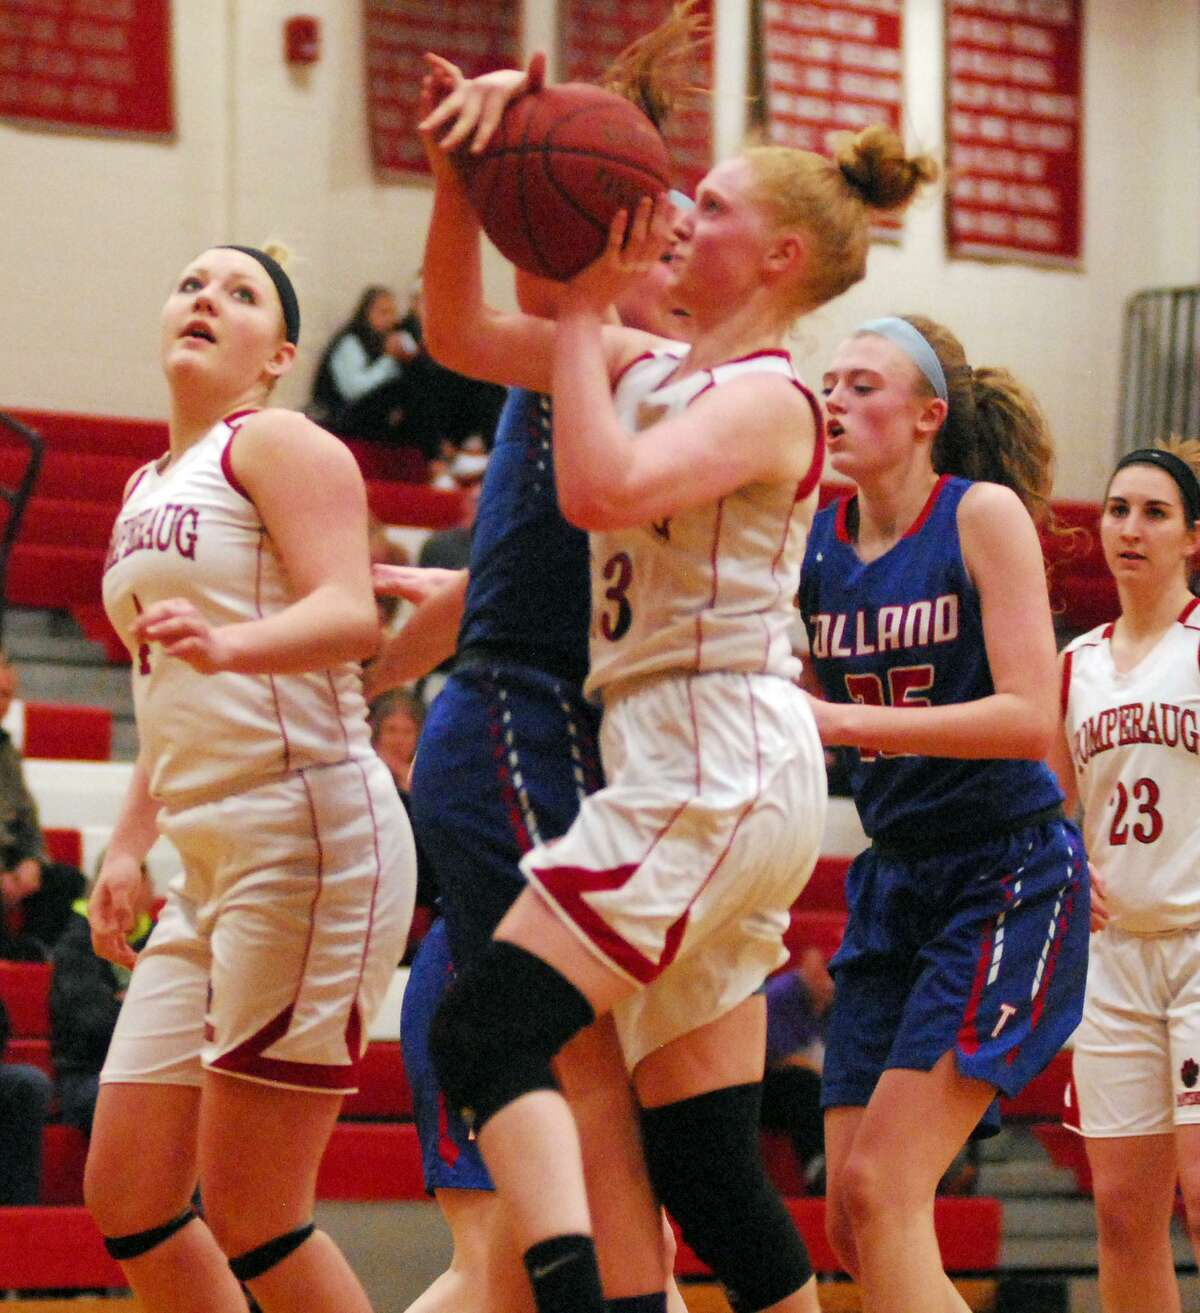 Pomperaug's Maggie Lee drives to the basket during a game against Tolland on Tuesday.